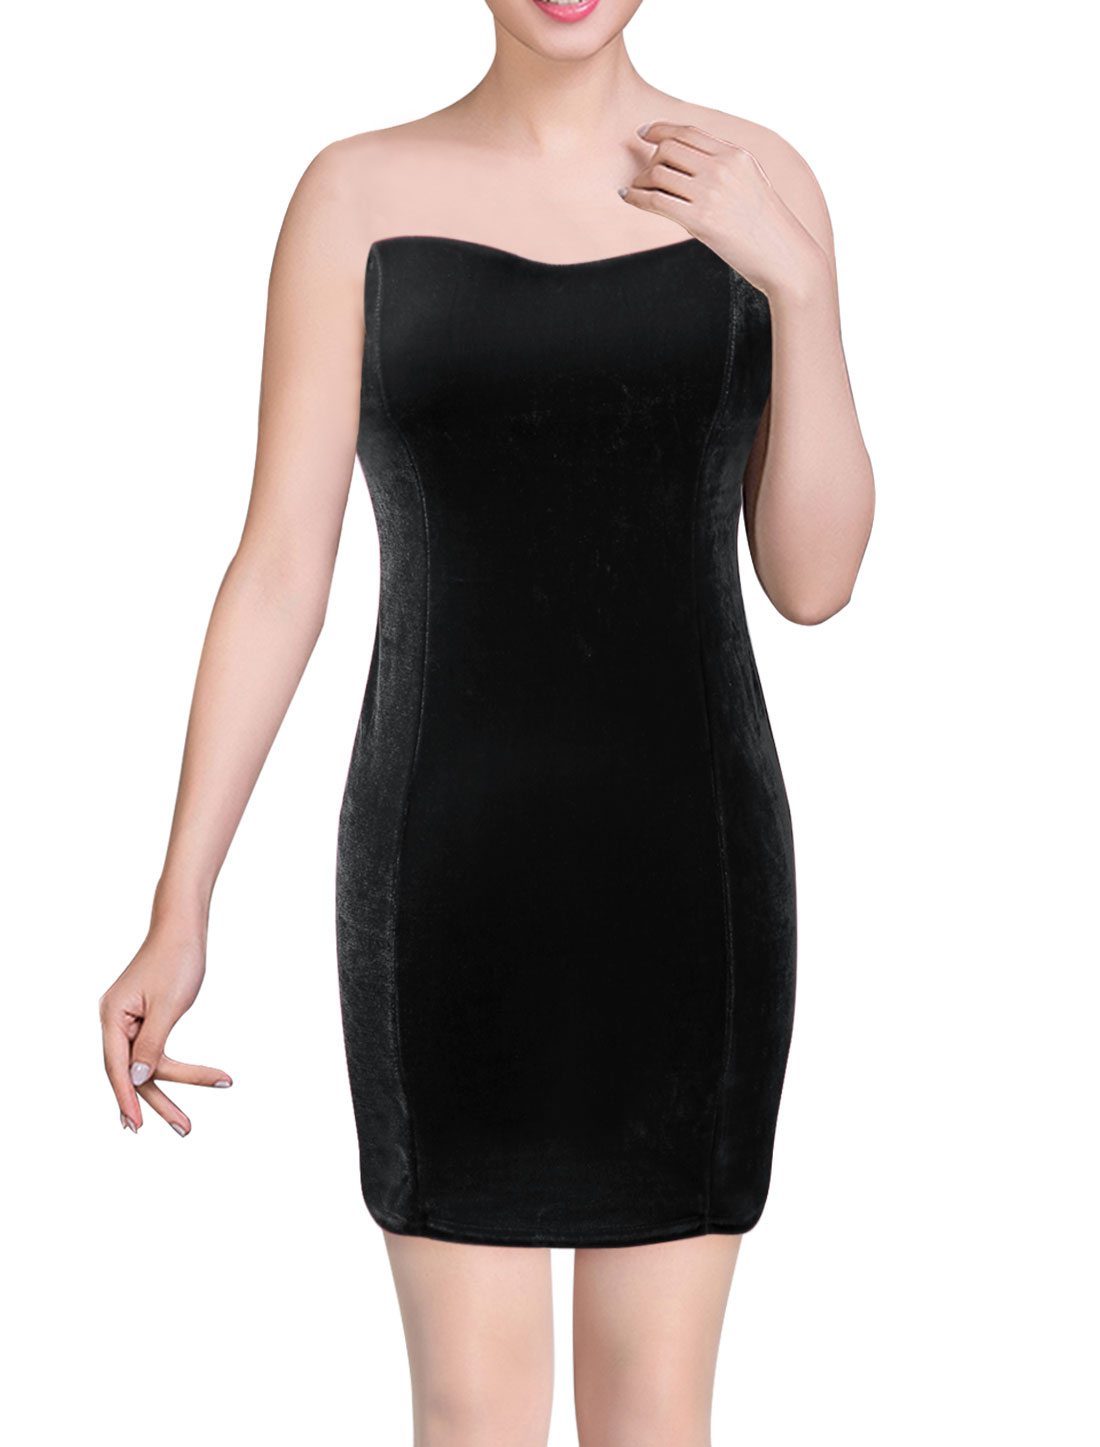 Women Sweetheart Neckline Sleeveless Sexy Sheath Dress Black XS